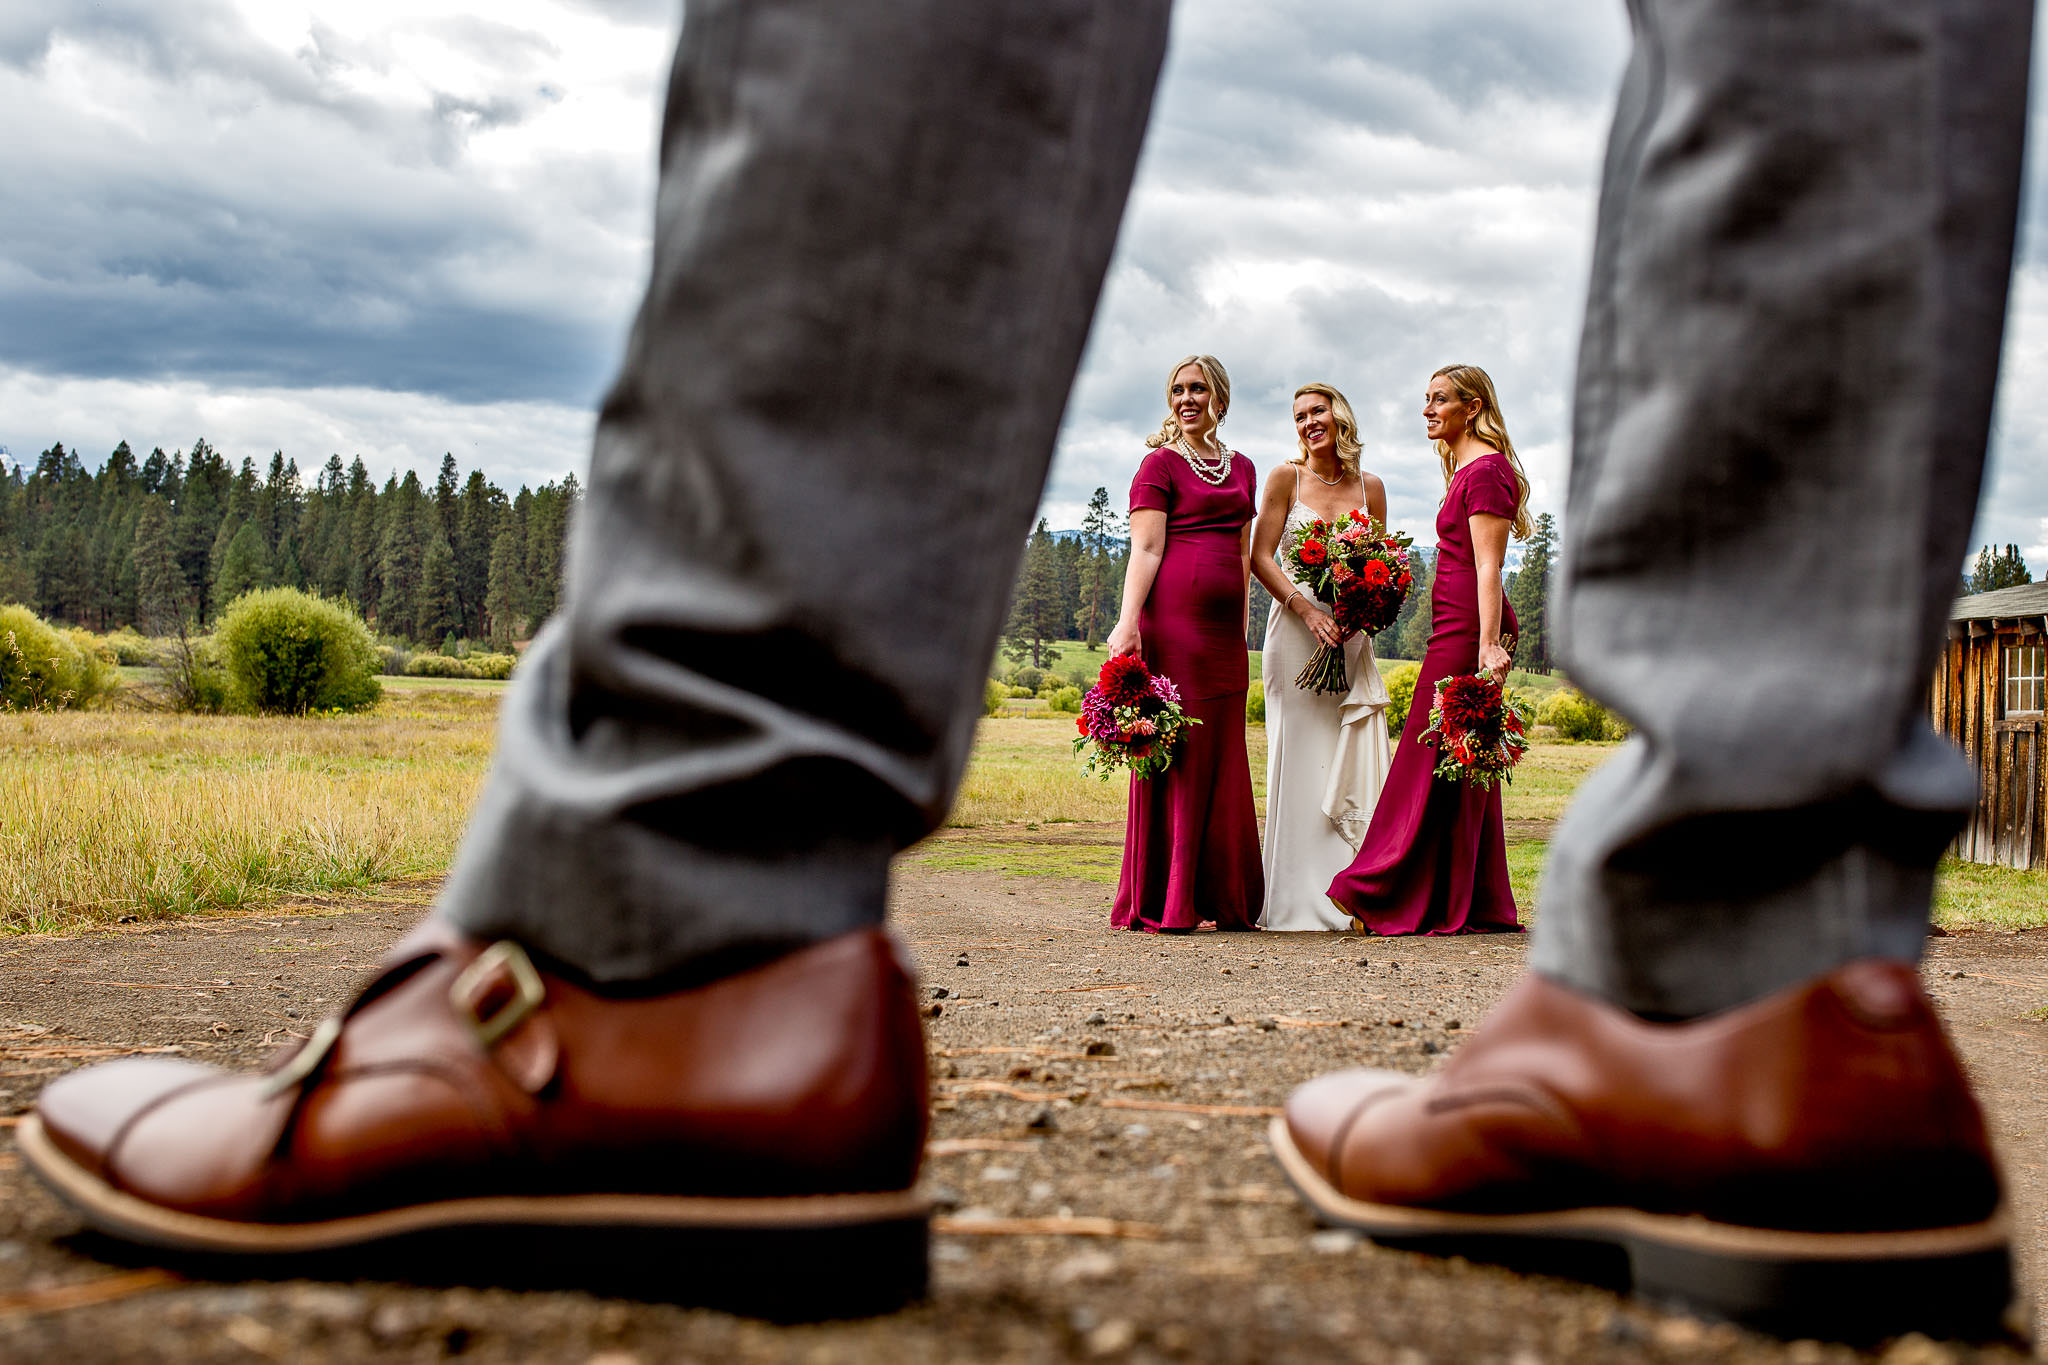 Bridesmaids captured through grooms shoes